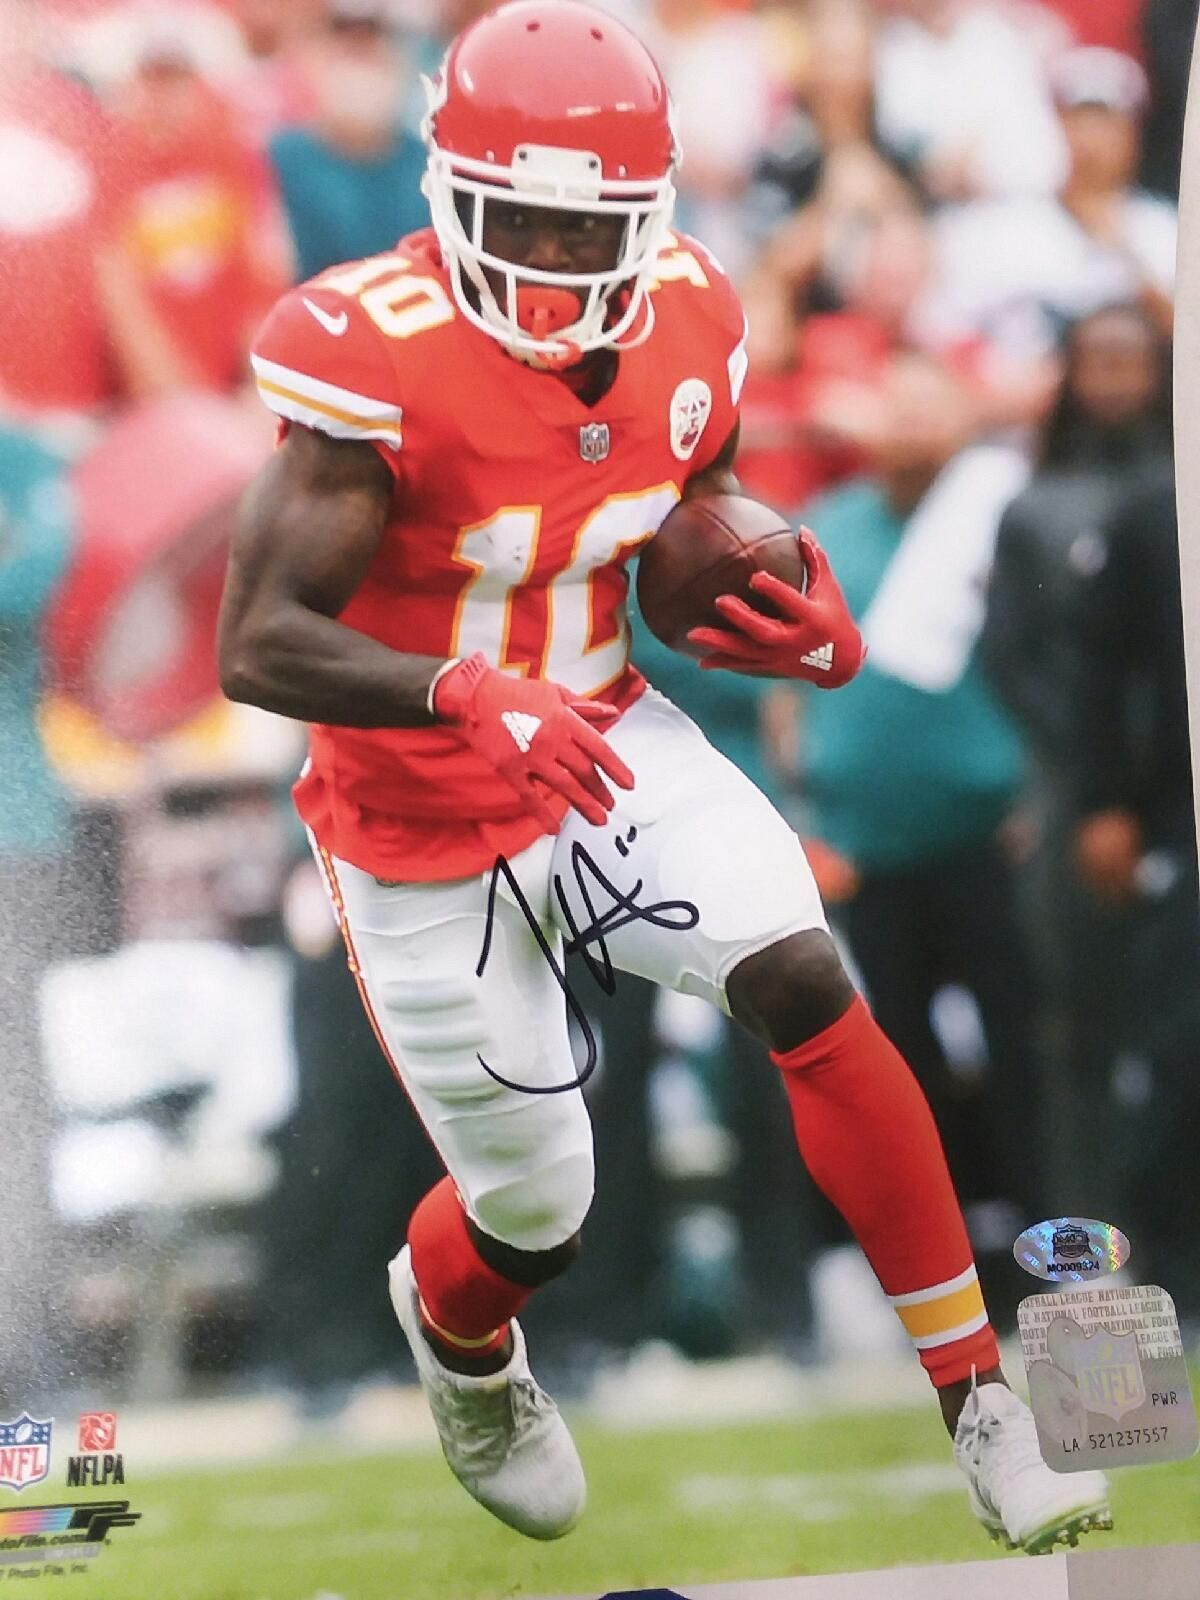 f594ef57c What a rookie season for Tyreek Hill in 2016. He was electric for the Kansas